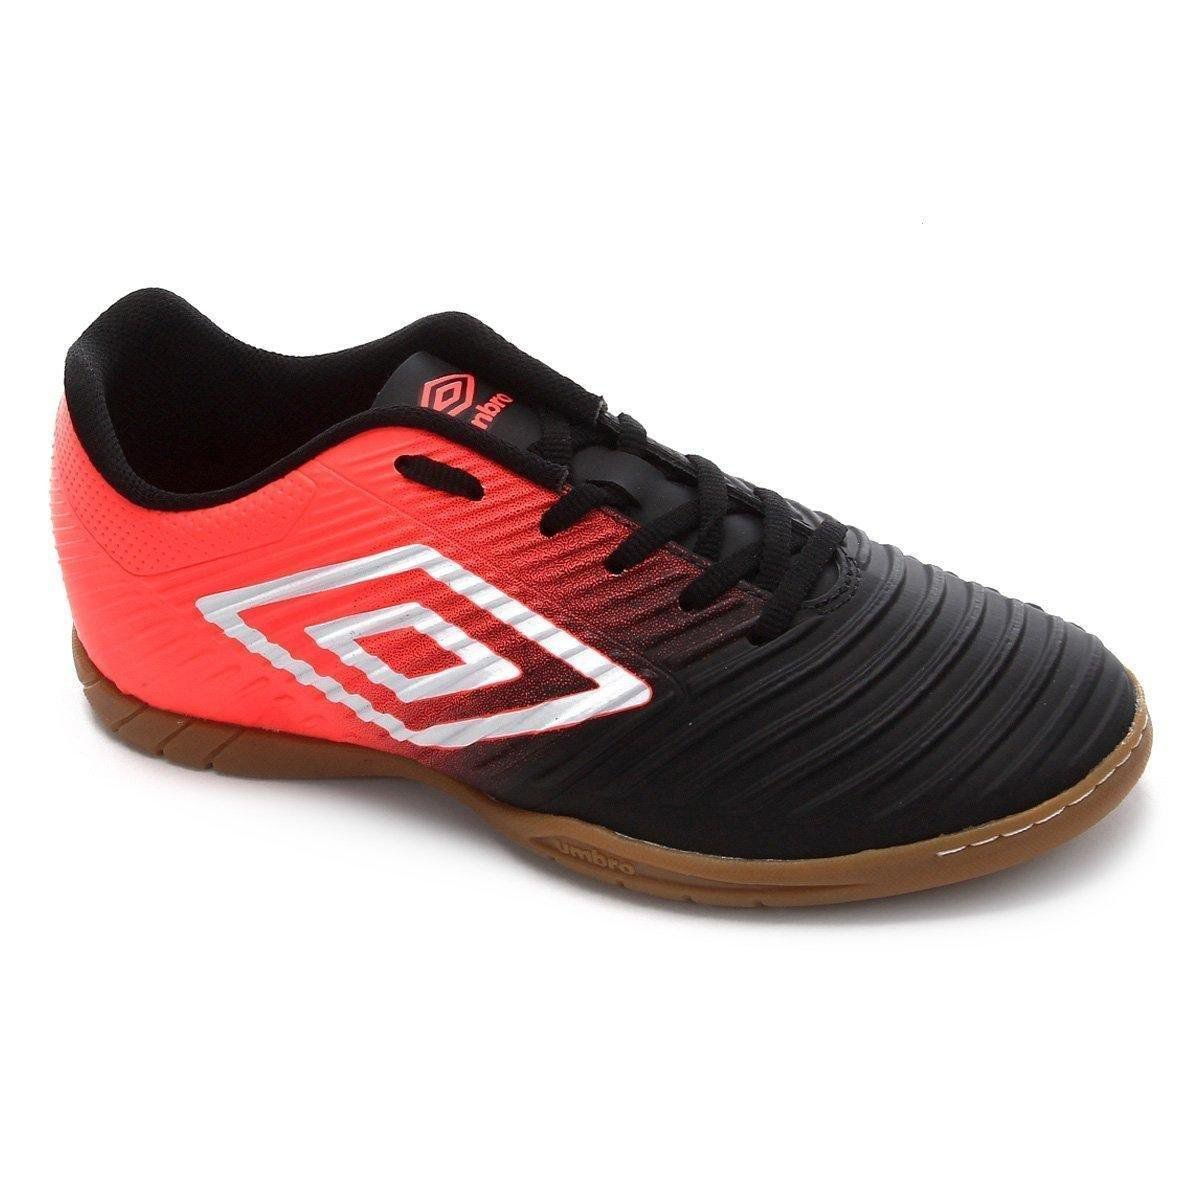 Tenis Umbro Indoor Fifty Iii 3 Futsal Costurada